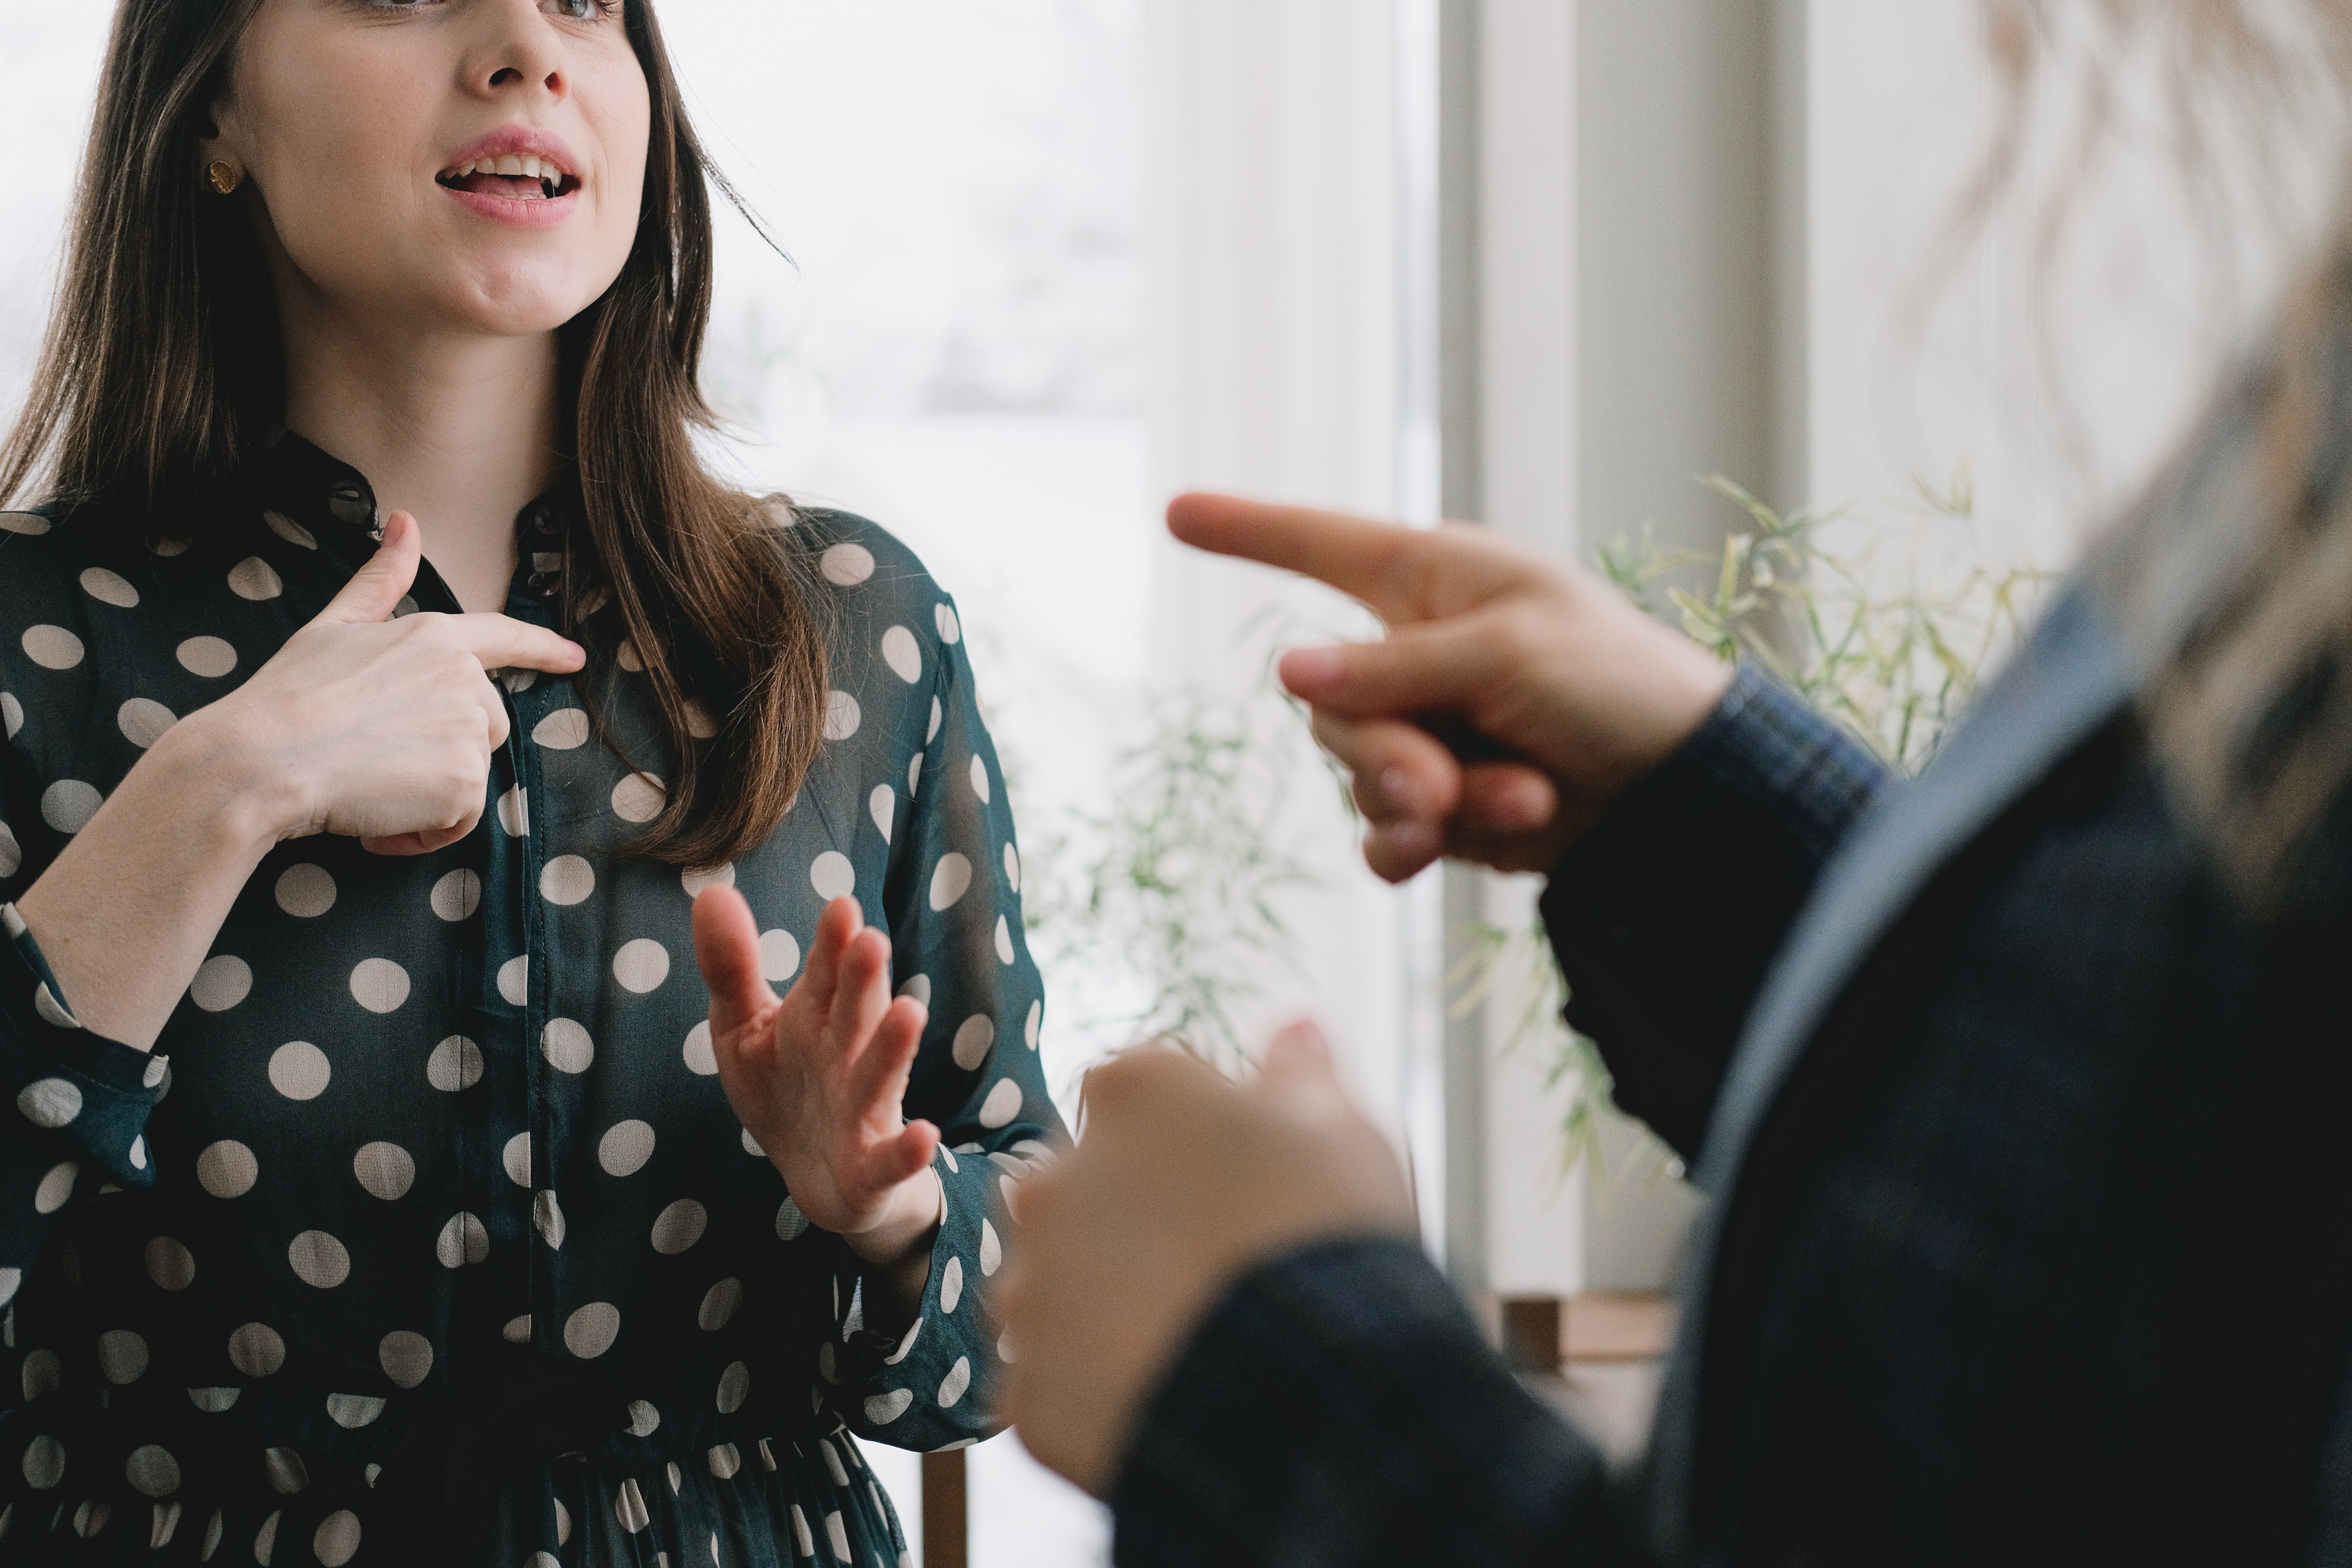 Woman arguing with a senior woman | Photo: Pexels